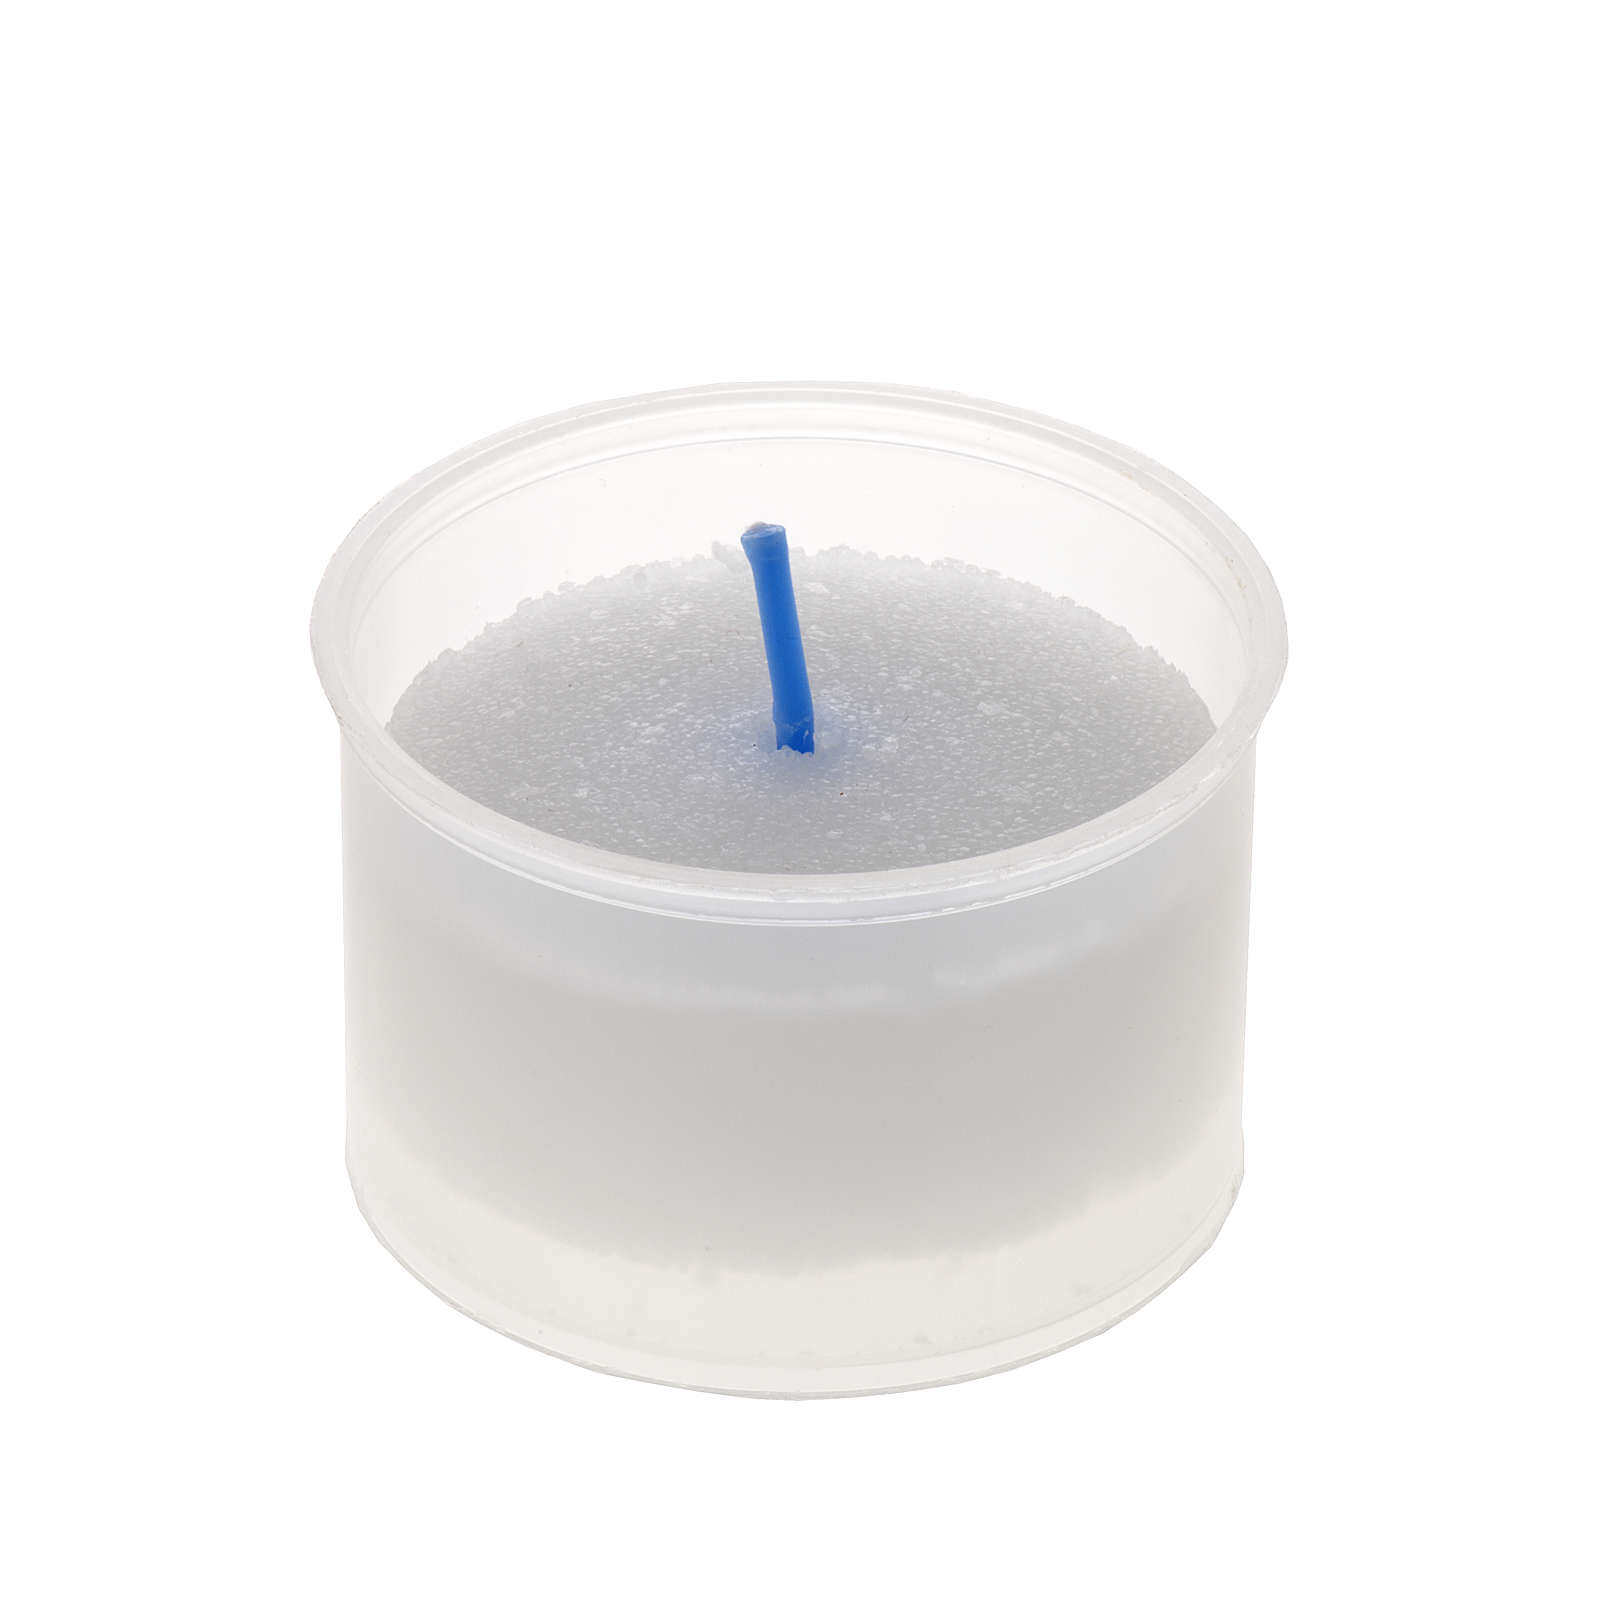 Tea light candle - white little Star model 3